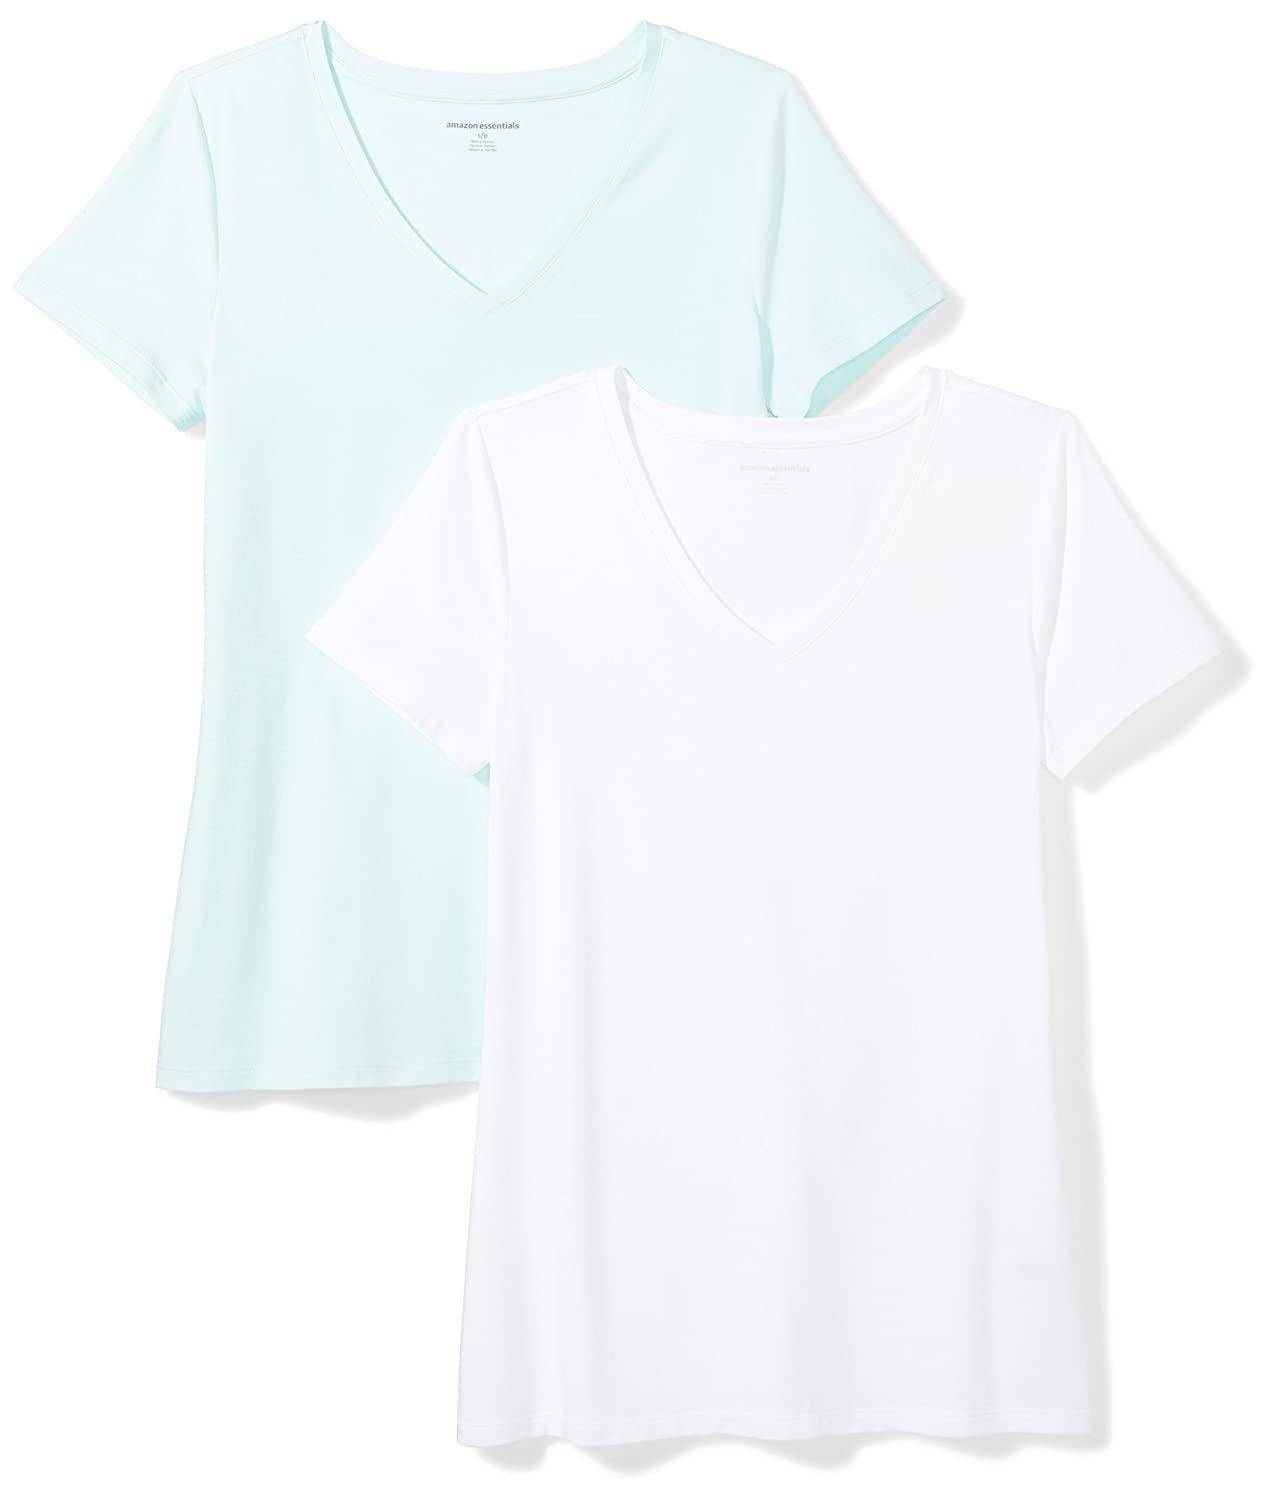 34c97eed Amazon.com: Amazon Essentials Women's 2-Pack Classic-Fit Short-Sleeve V-Neck  T-Shirt: Clothing